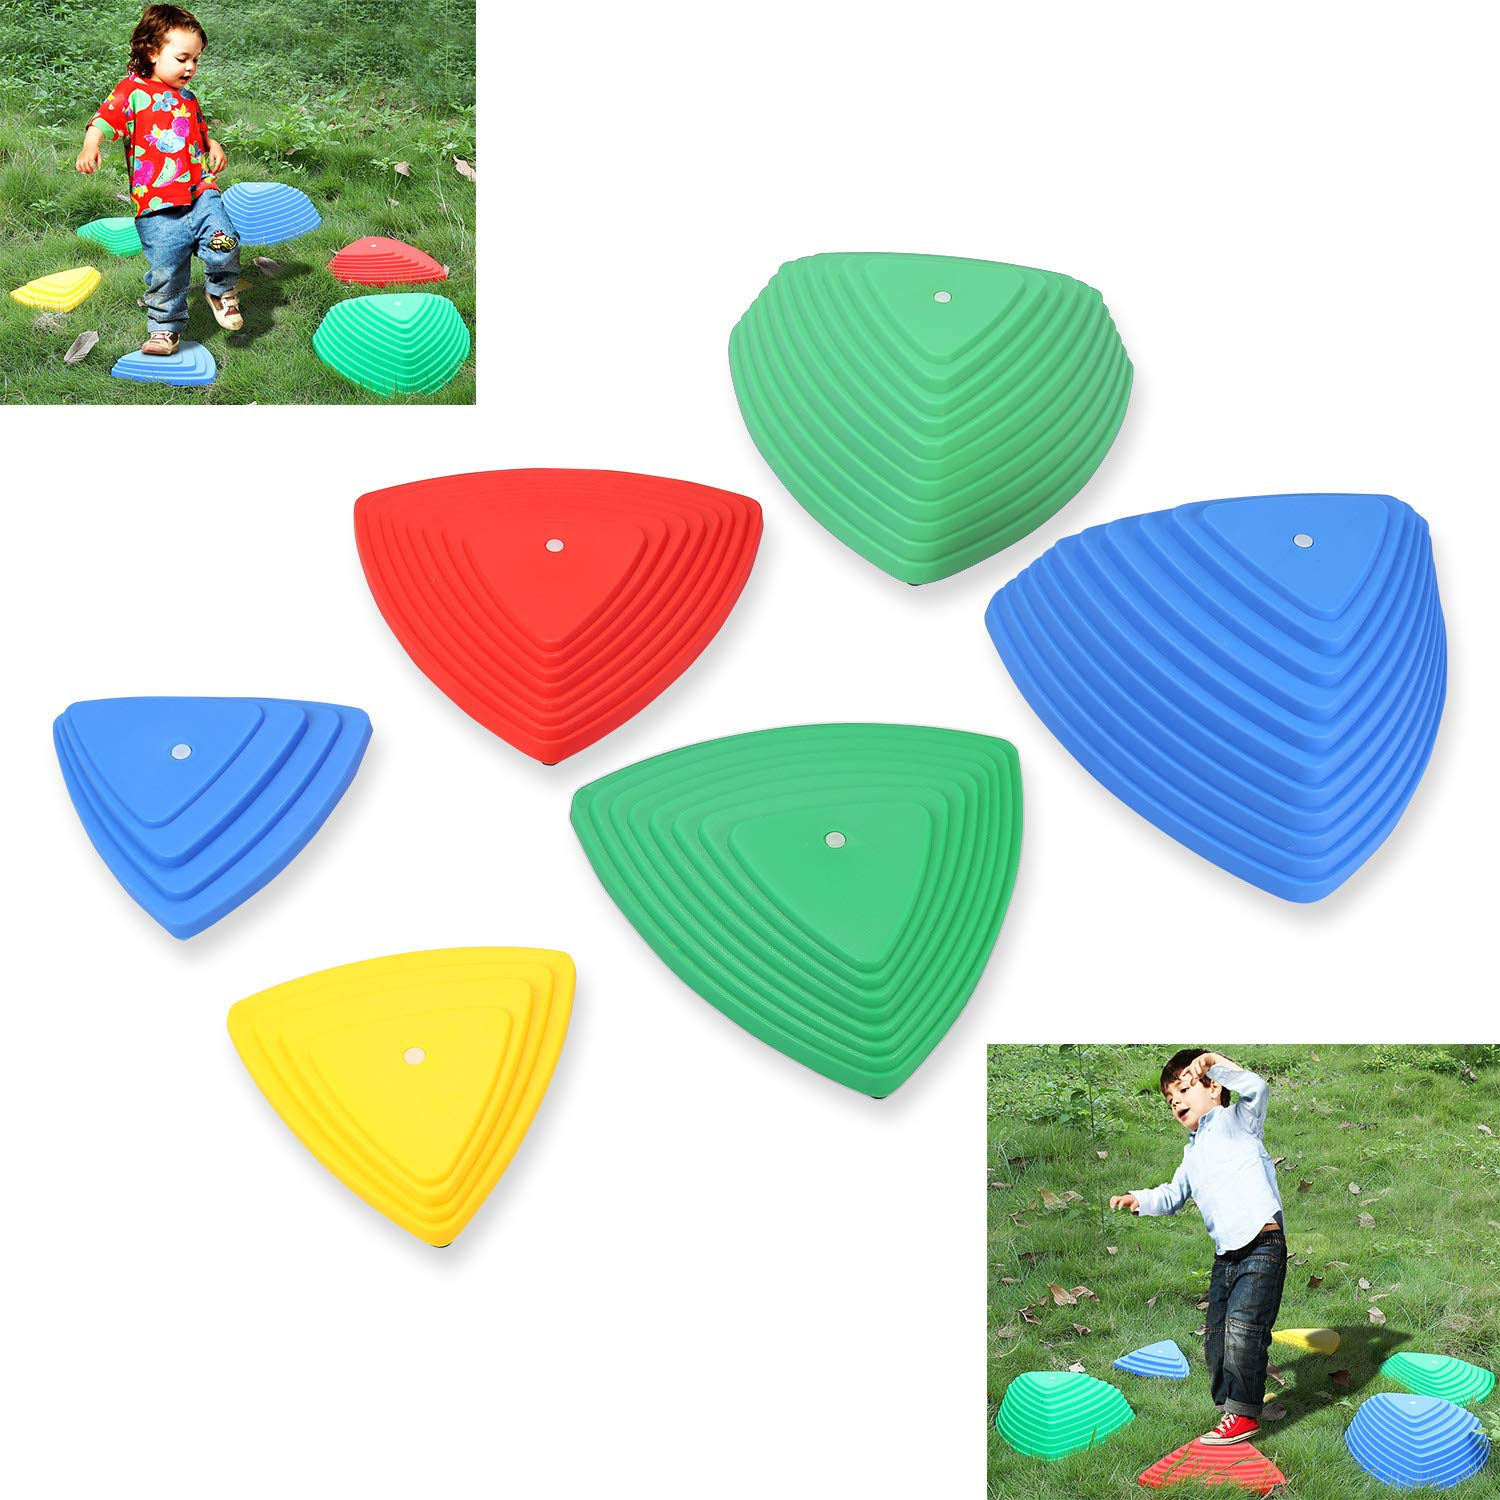 PKBQUEEN River Stones Obstacle Balance Course, 5 Colors & 3 Different Height & Sizes by PKBQUEEN